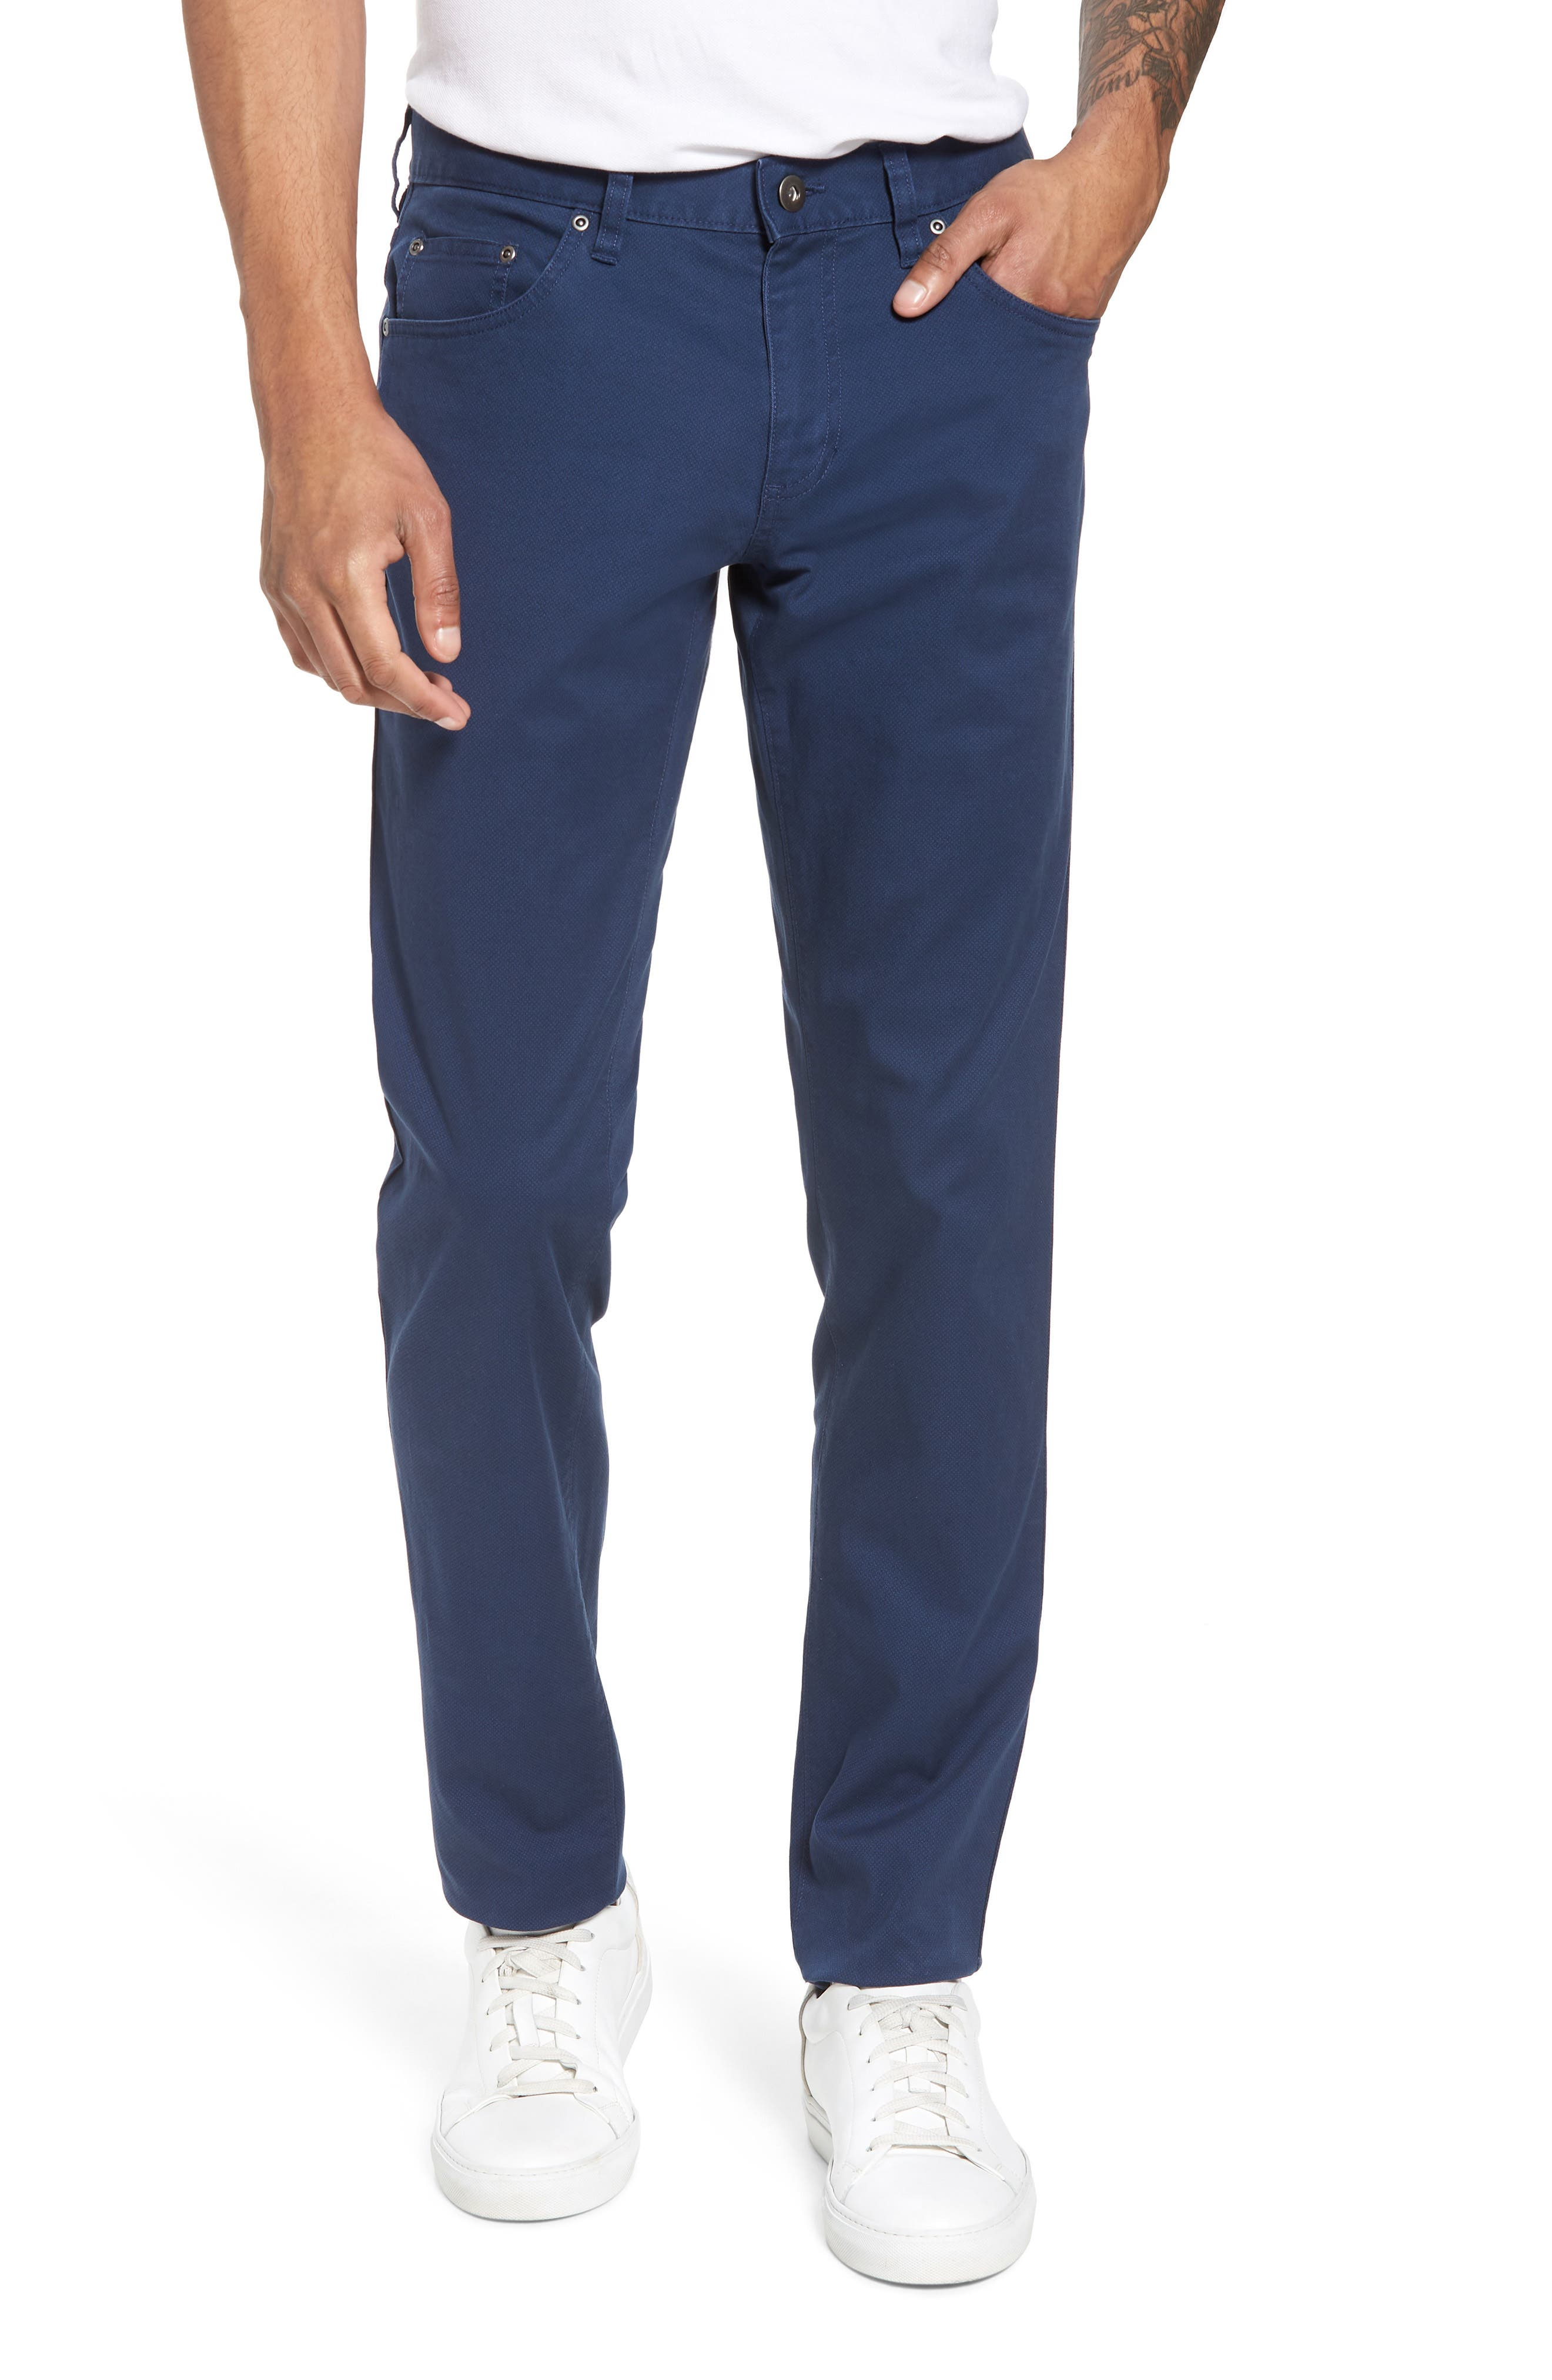 Alternate Image 1 Selected - Nordstrom Men's Shop Textured Stretch Cotton Pants